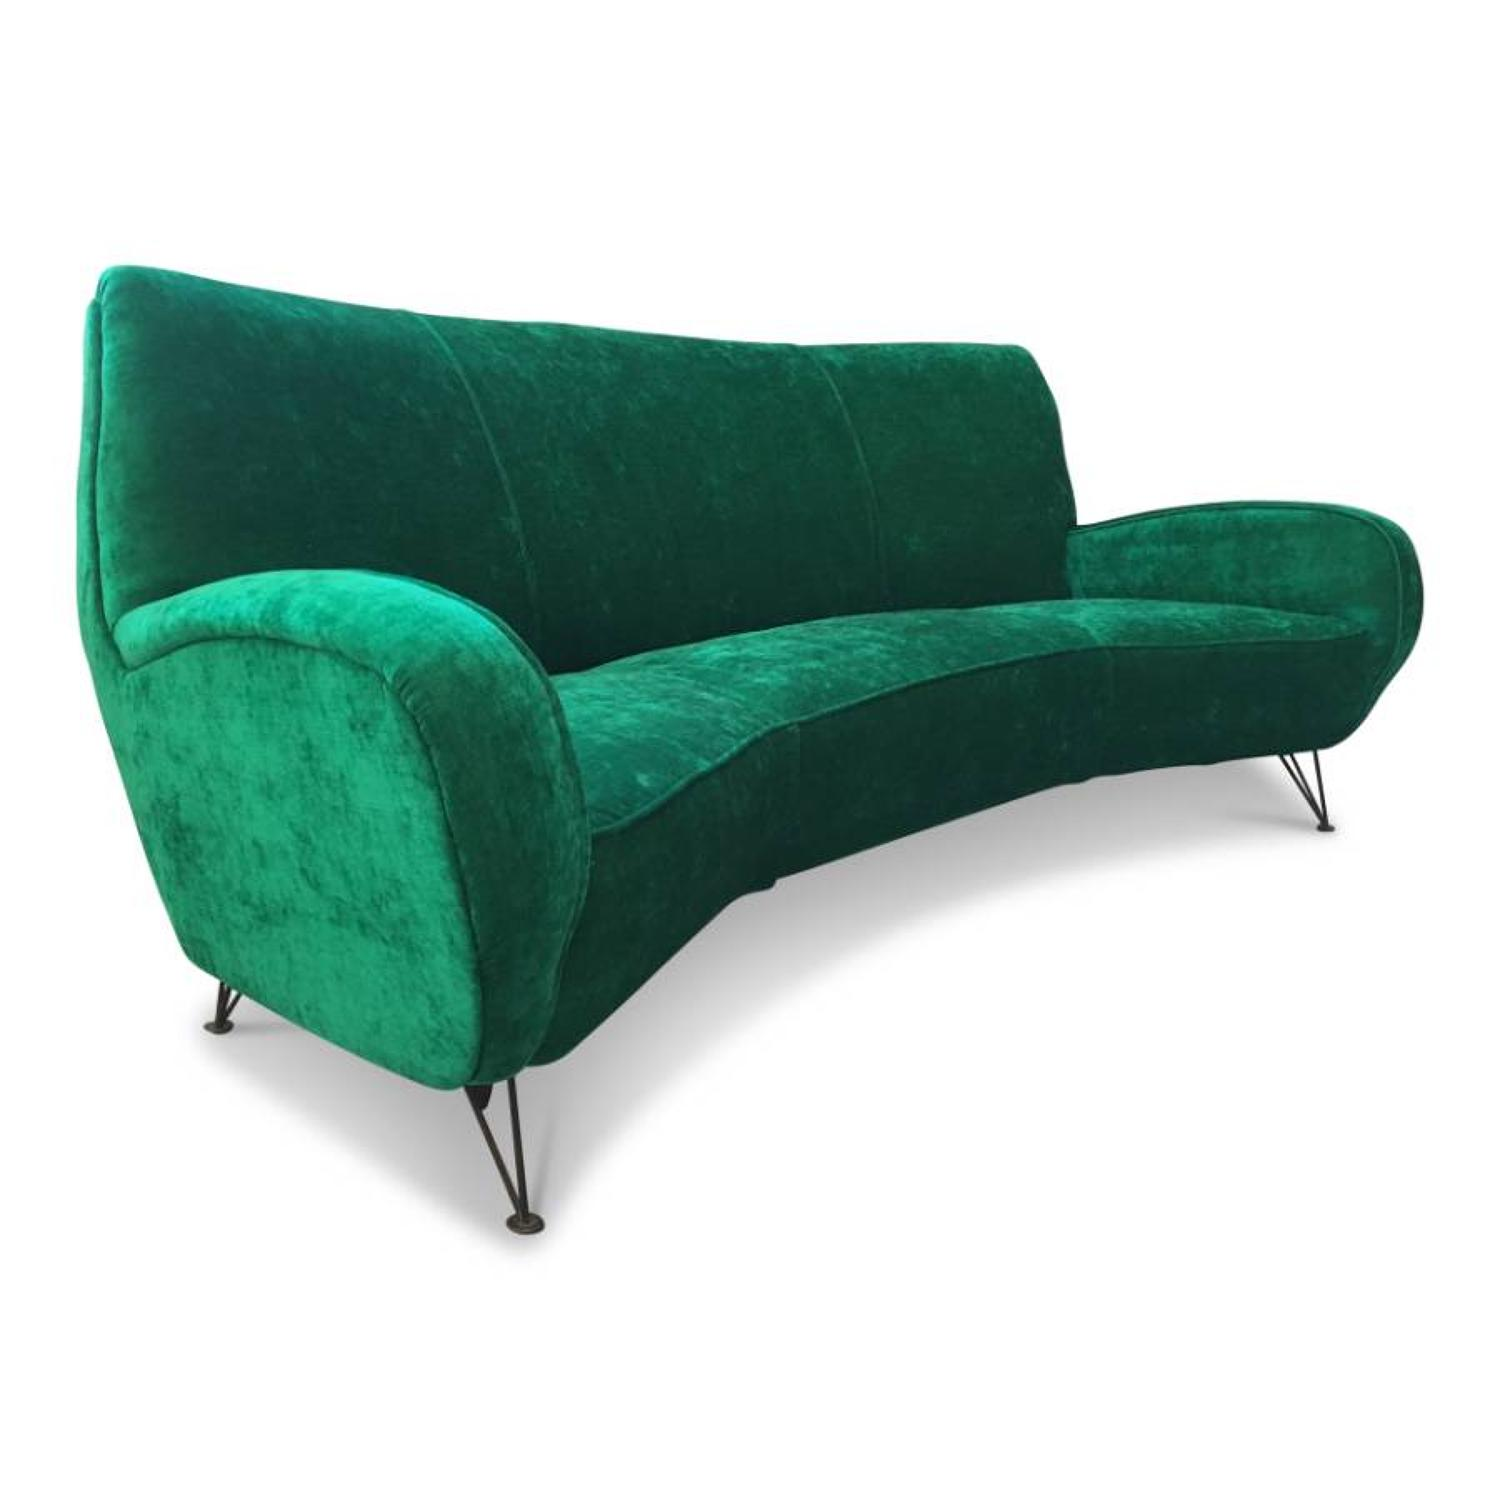 1960s Italian sofa in emerald velvet